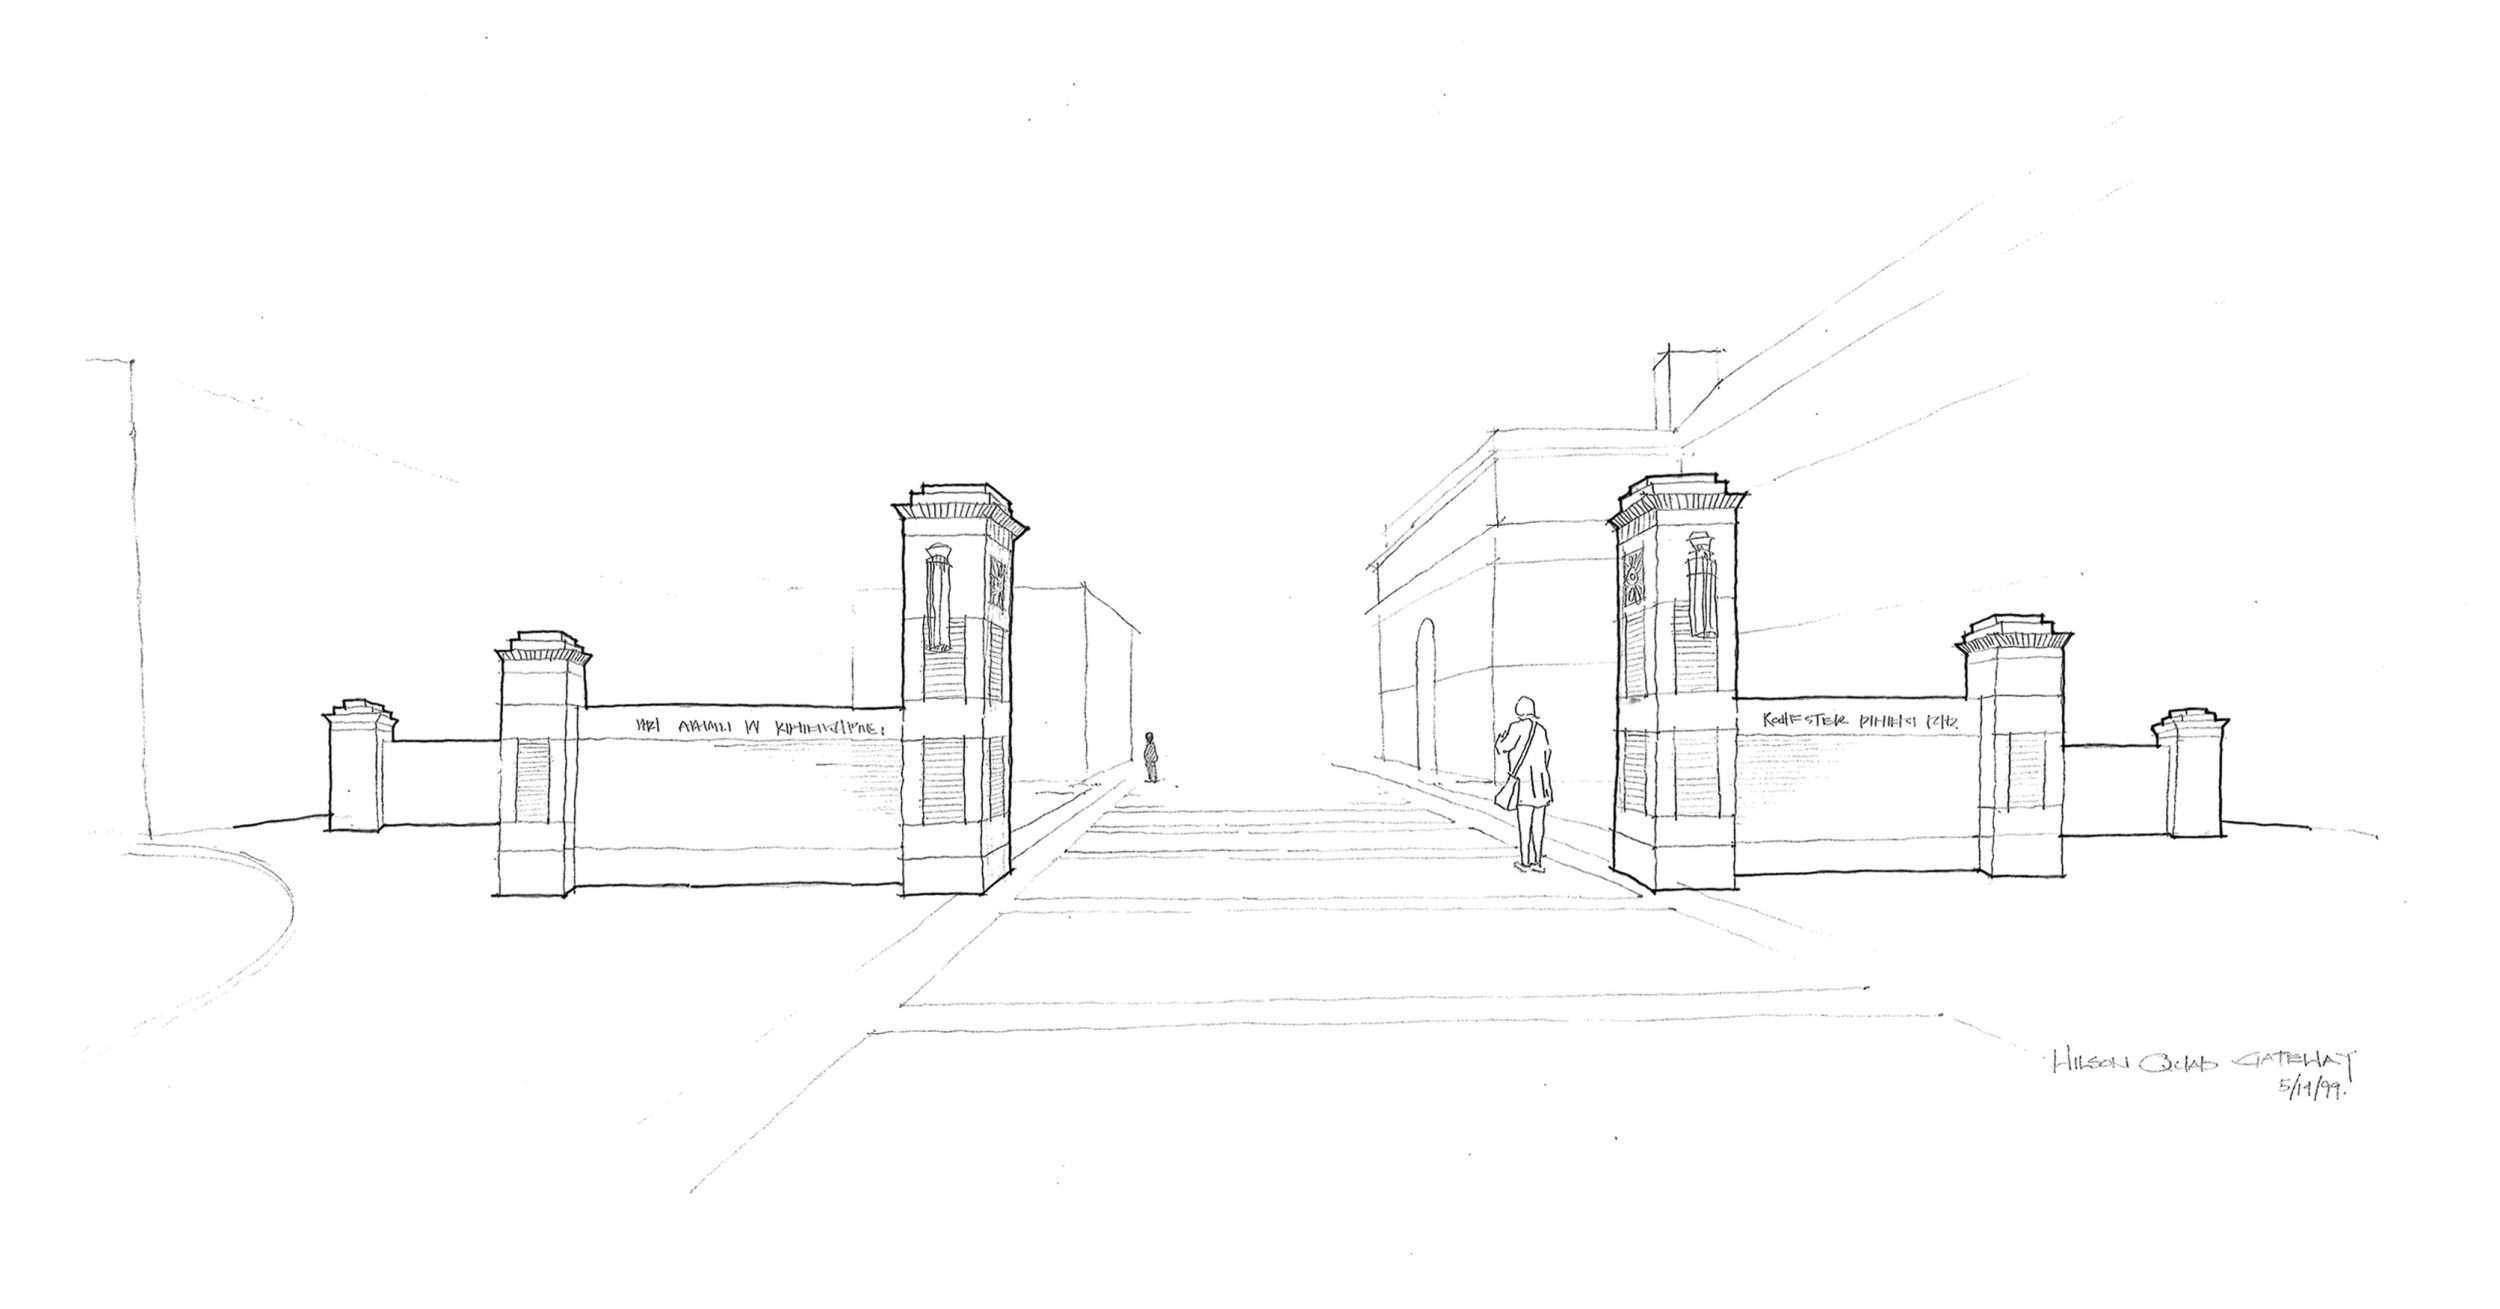 U OF R_Perspective_sketch